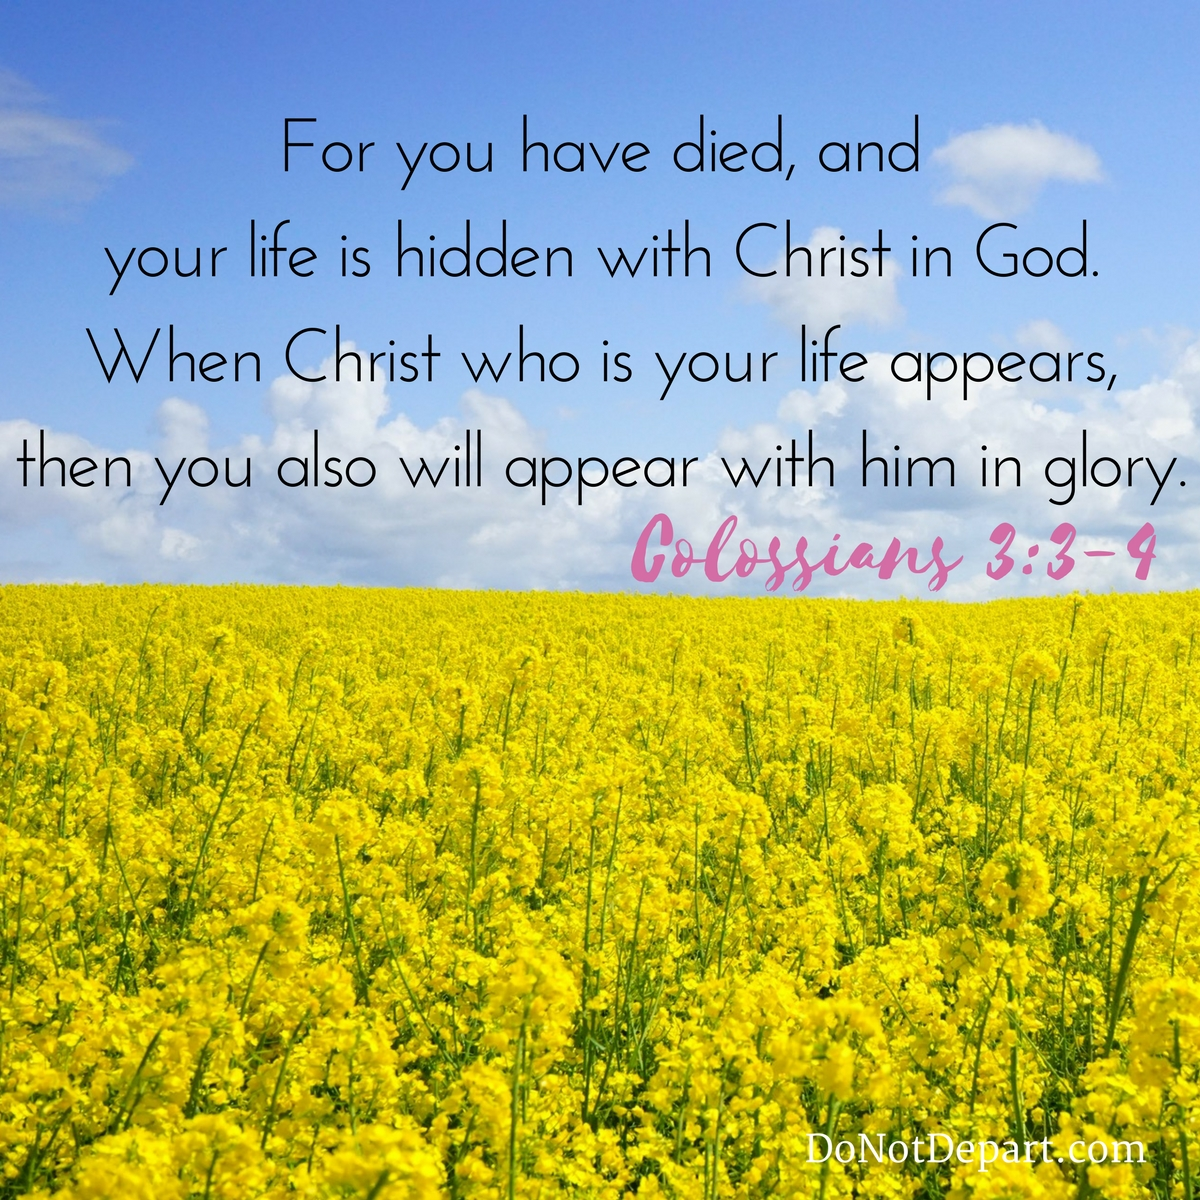 Back to Life {Memorizing Colossians 3:3-4}